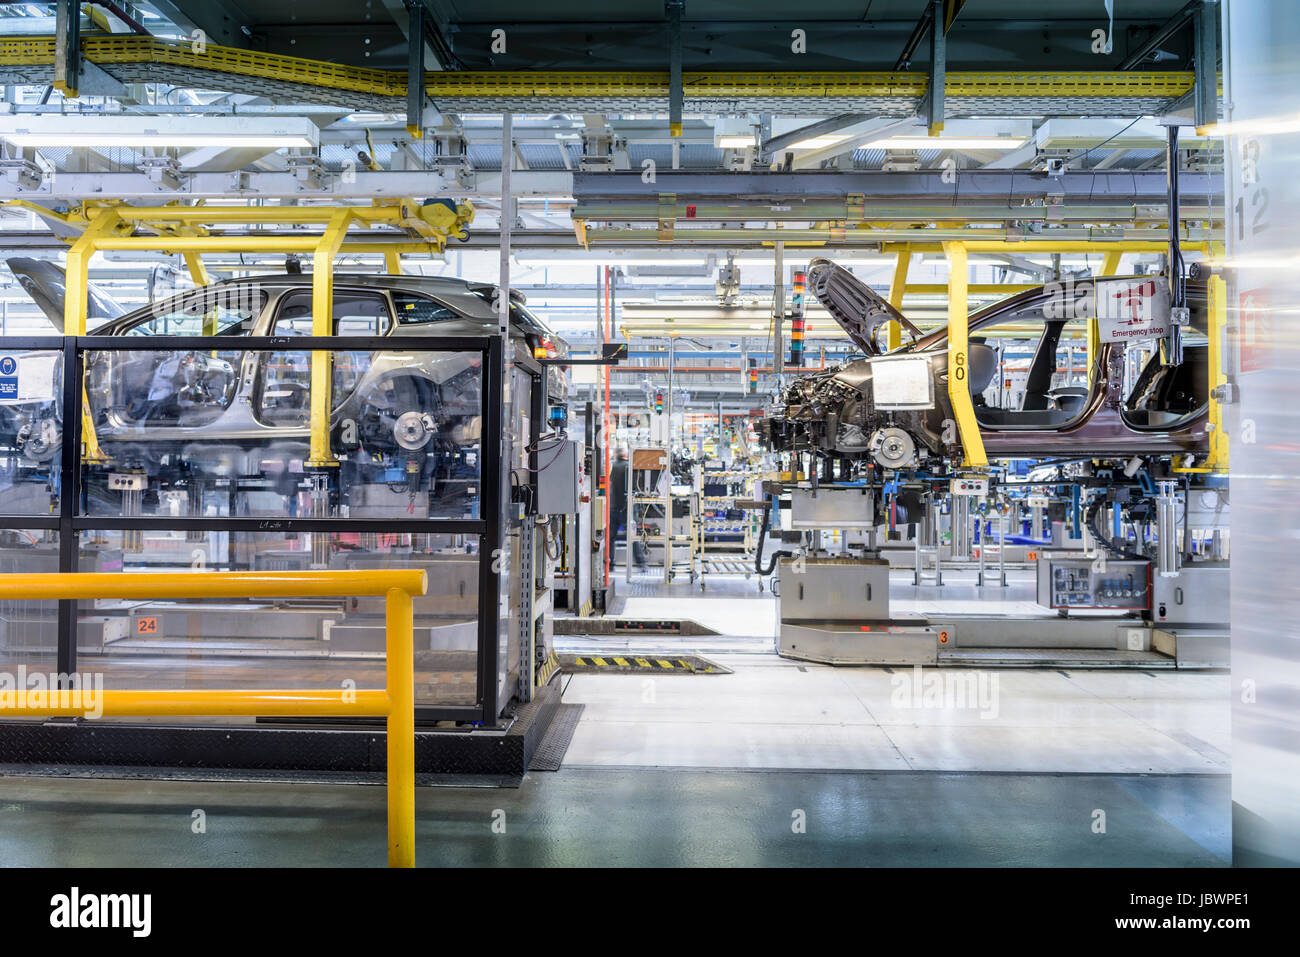 Car production line in car factory - Stock Image